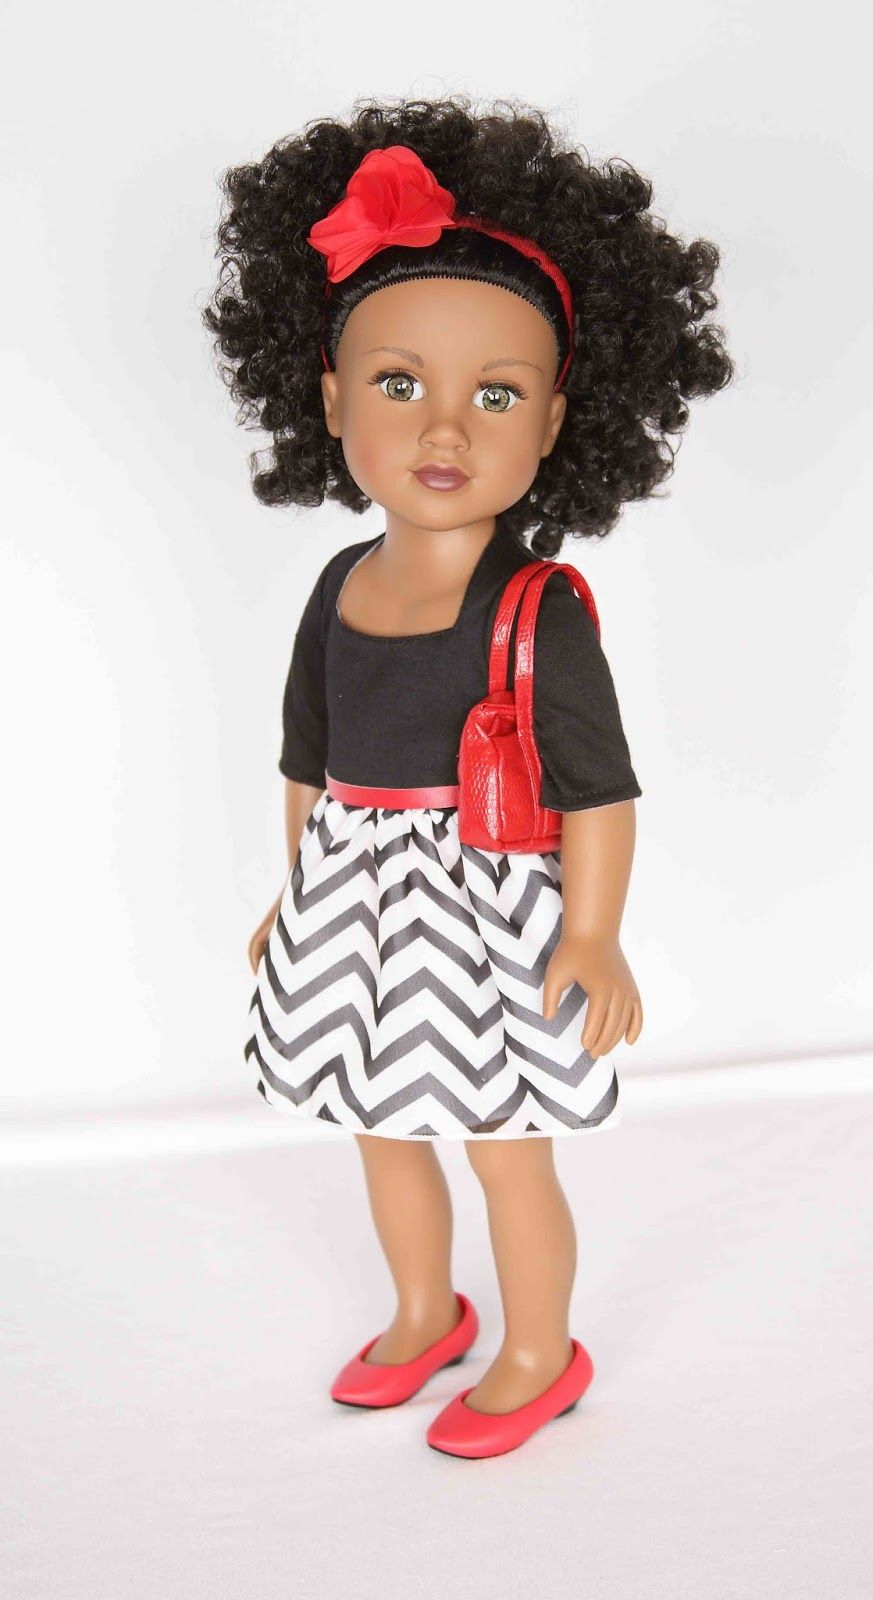 image journey girl Meredith - Google Search | AG: !!Non-AG Dolls ...